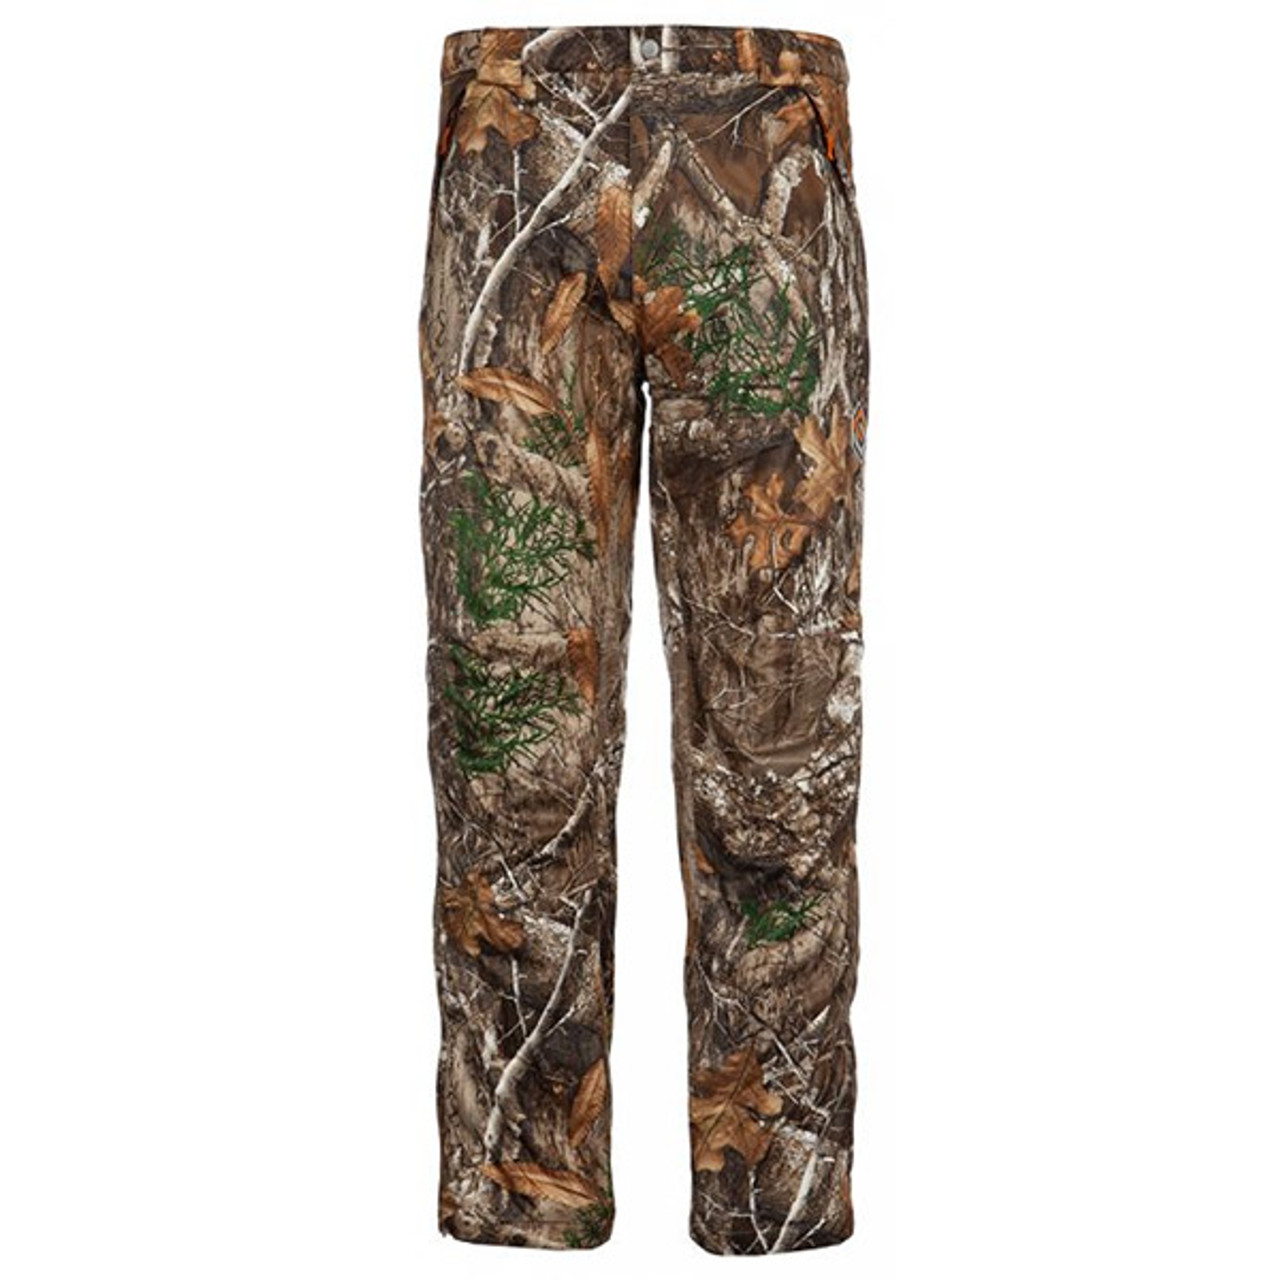 Vapour Waterproof Midweight Pant Realtree Edge Camo